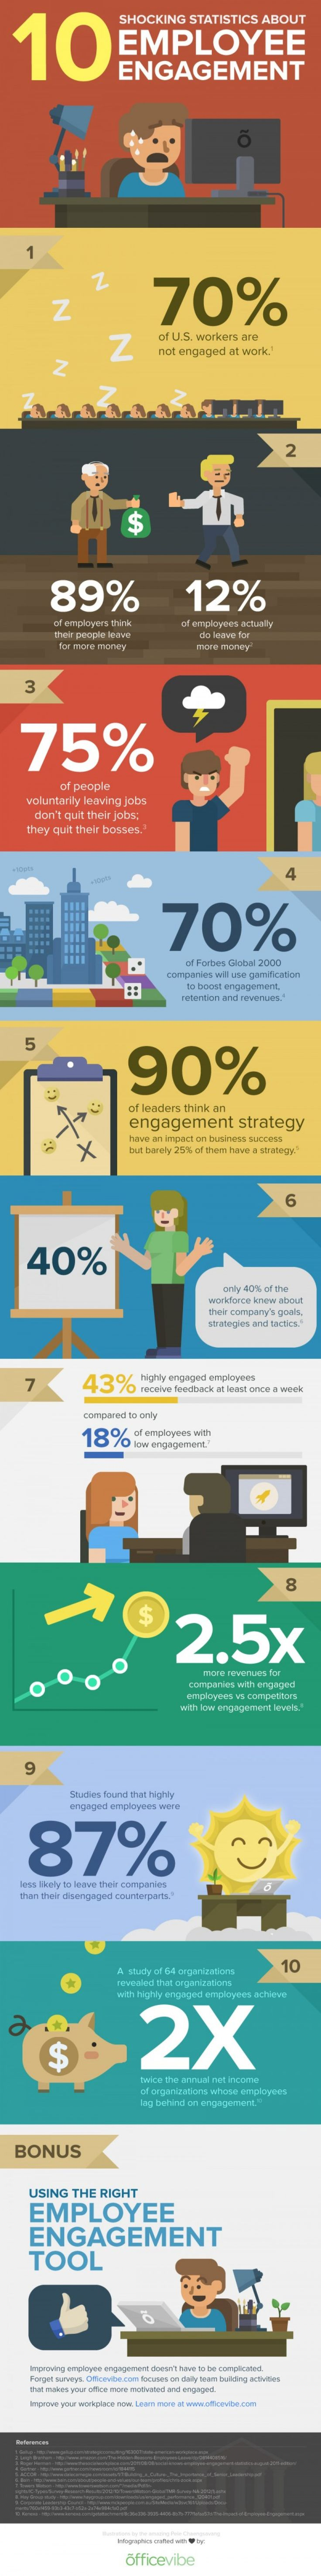 The Happiest People Work For Companies That Have Some Or All Of These Things Nailed